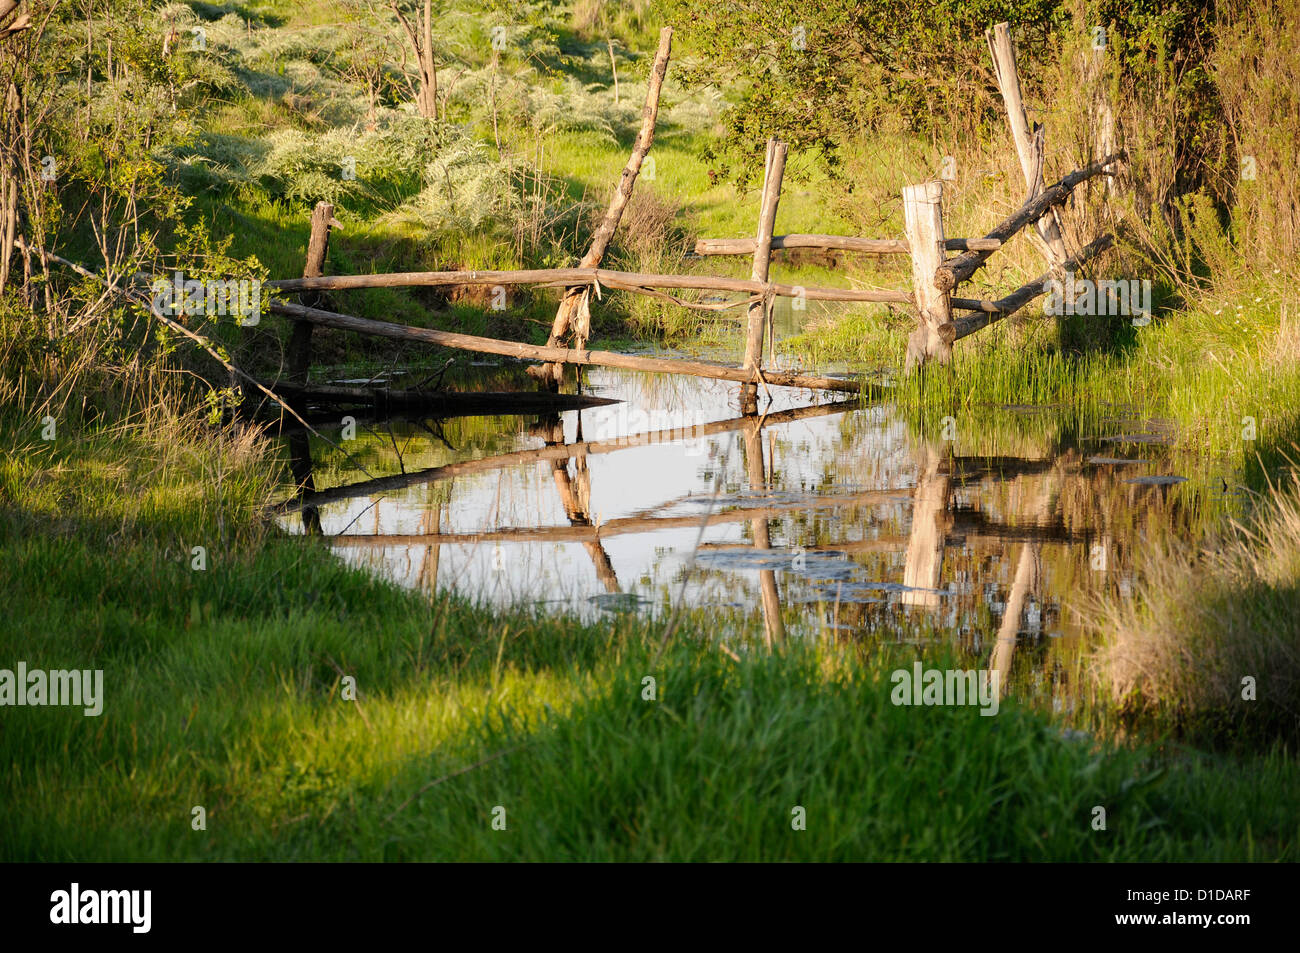 Fence in pool of water - Stock Image